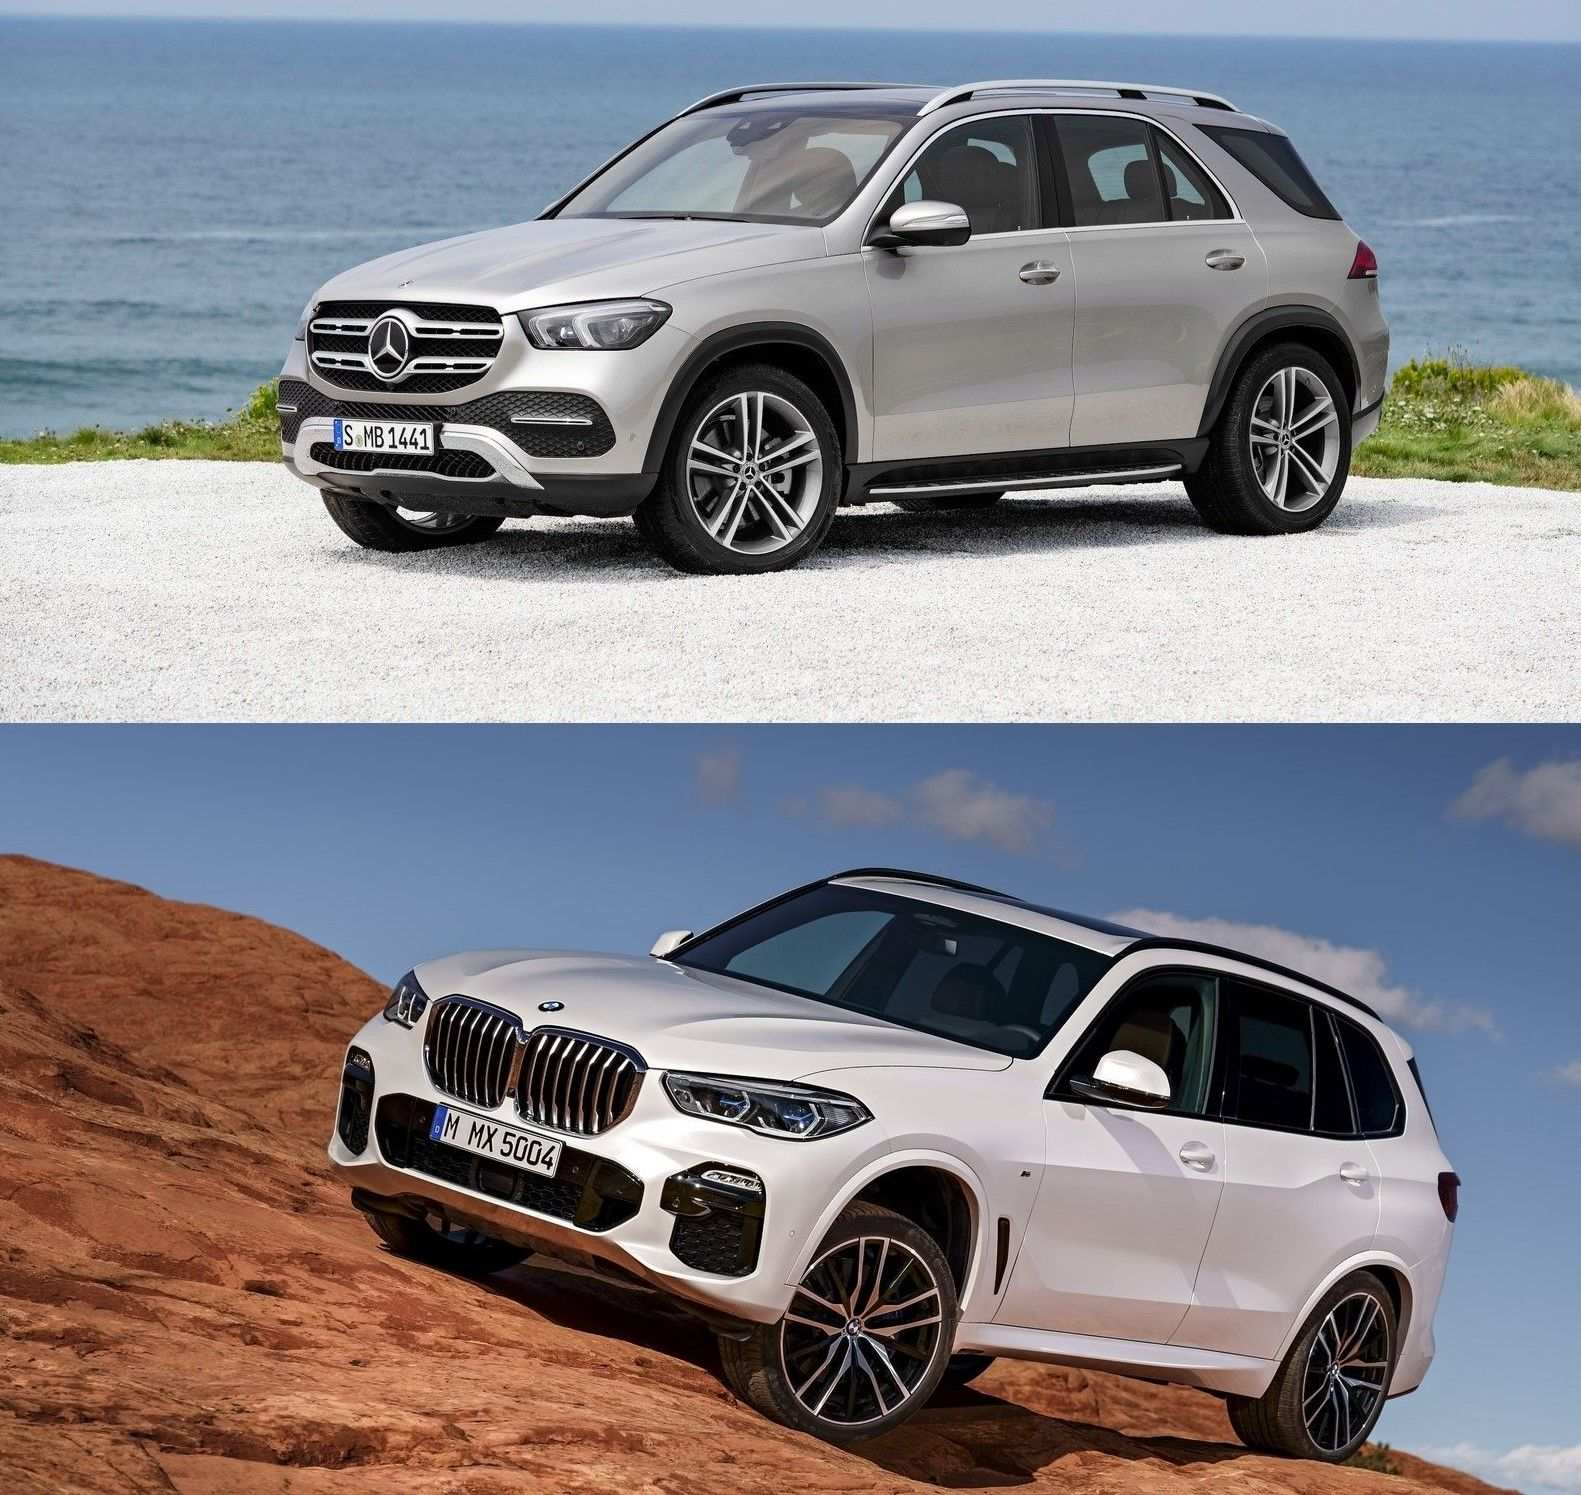 43 Gallery of 2020 Mercedes Gle Vs BMW X5 Overview for 2020 Mercedes Gle Vs BMW X5